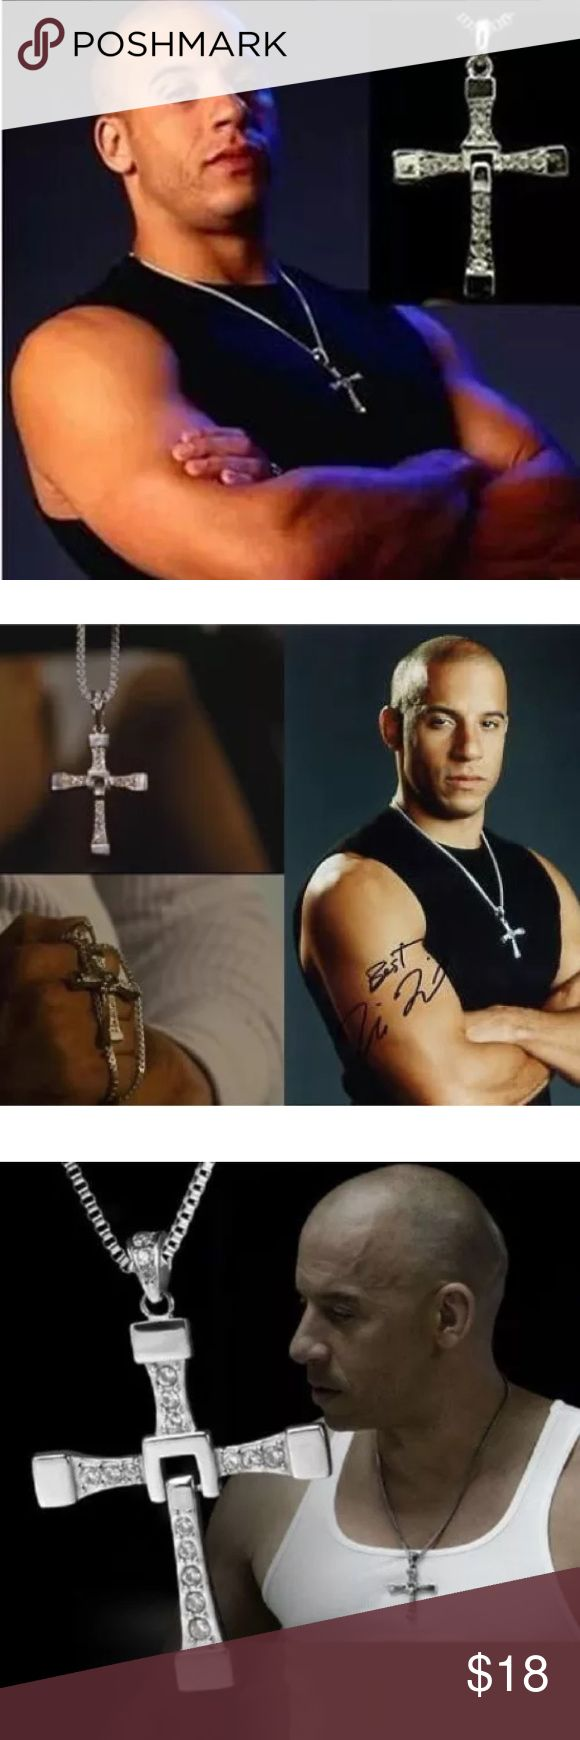 """❤️👨🏻THE FAST & THE FURIOUS VIN DIESEL REPLIC NEW ❤️As worn by actor Vin Diesel in **The Fast and The Furious** #1 Action movie. This Beautiful and Intricate Masculine Snake Chain and Cross is in Silver with sparkling Austrian Crystals. Bottom of Cross Swivels with total measures of 2 1/2"""" Cross w/ 19""""Long Snake Chain NEW!! Jewelry Necklaces"""